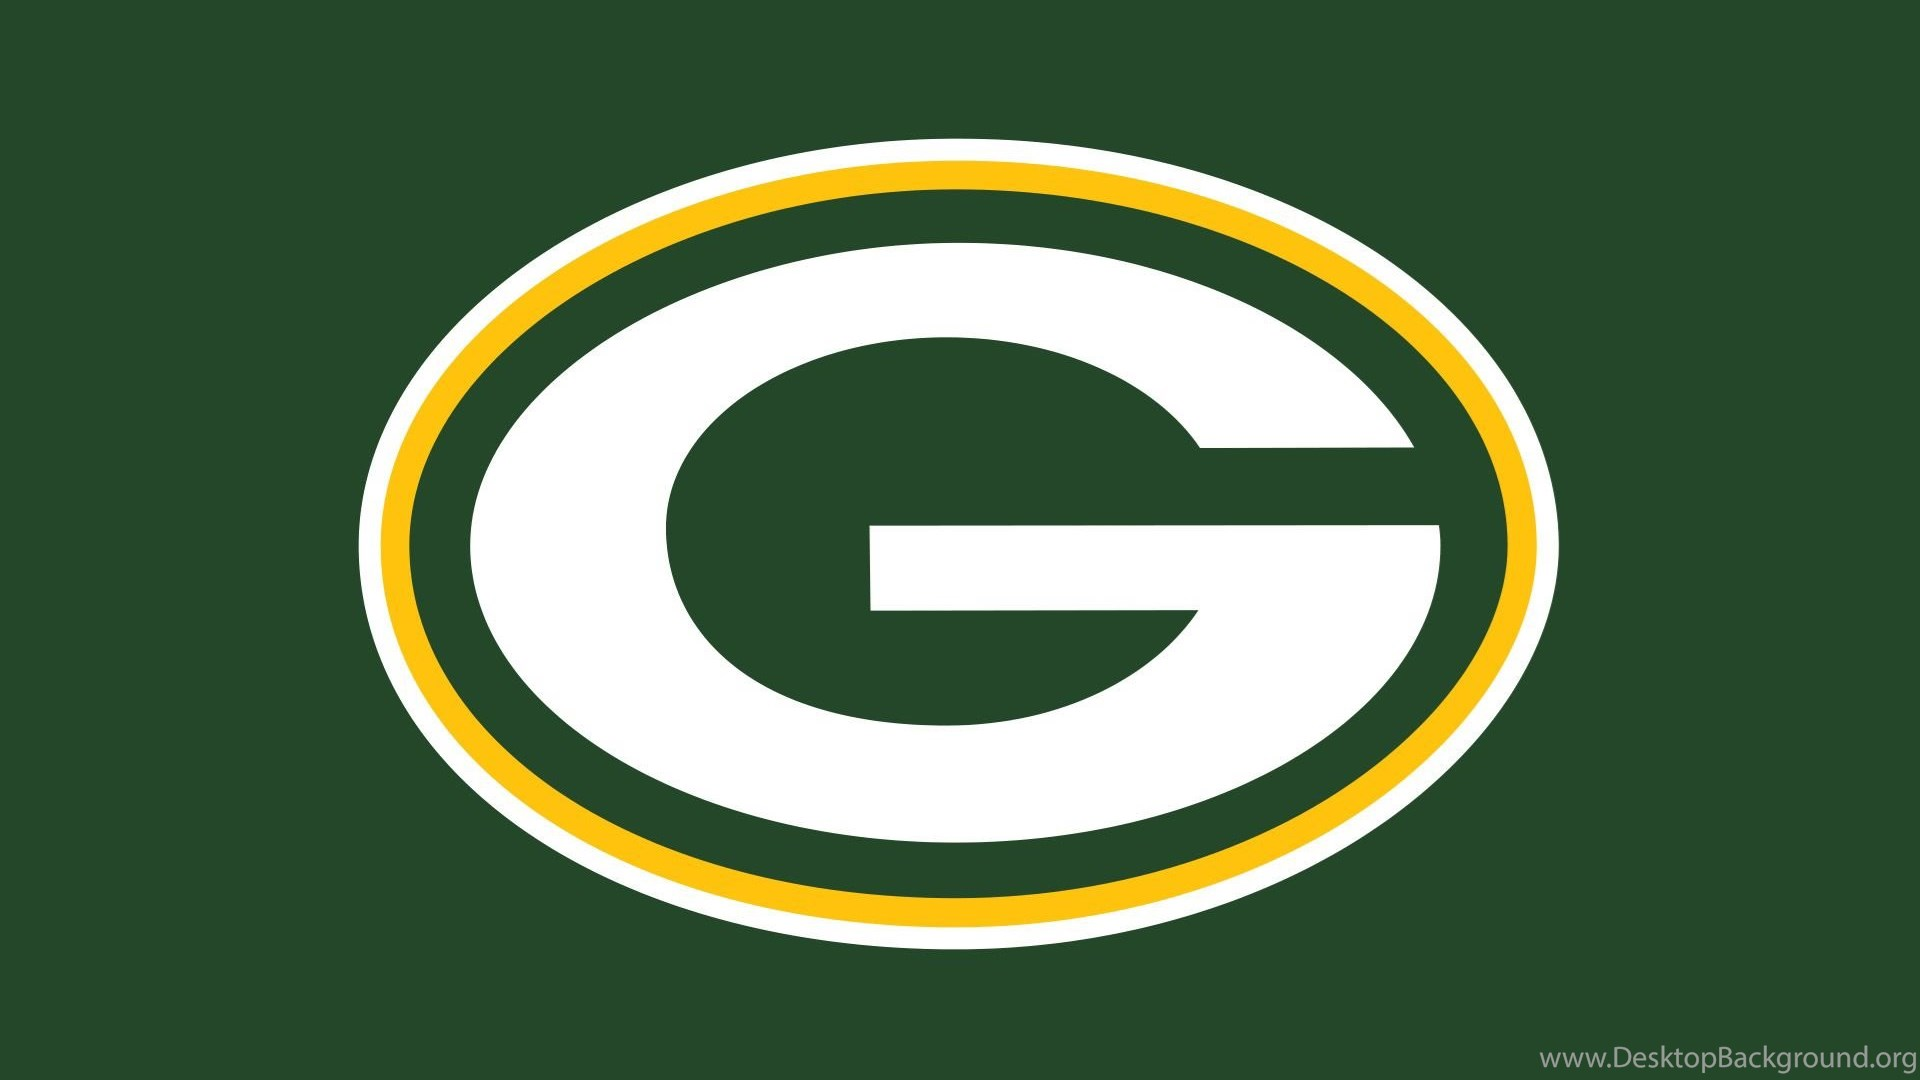 Green Bay Packer Wallpaper: Green Bay Packers Logo Wallpapers 182692 Desktop Background